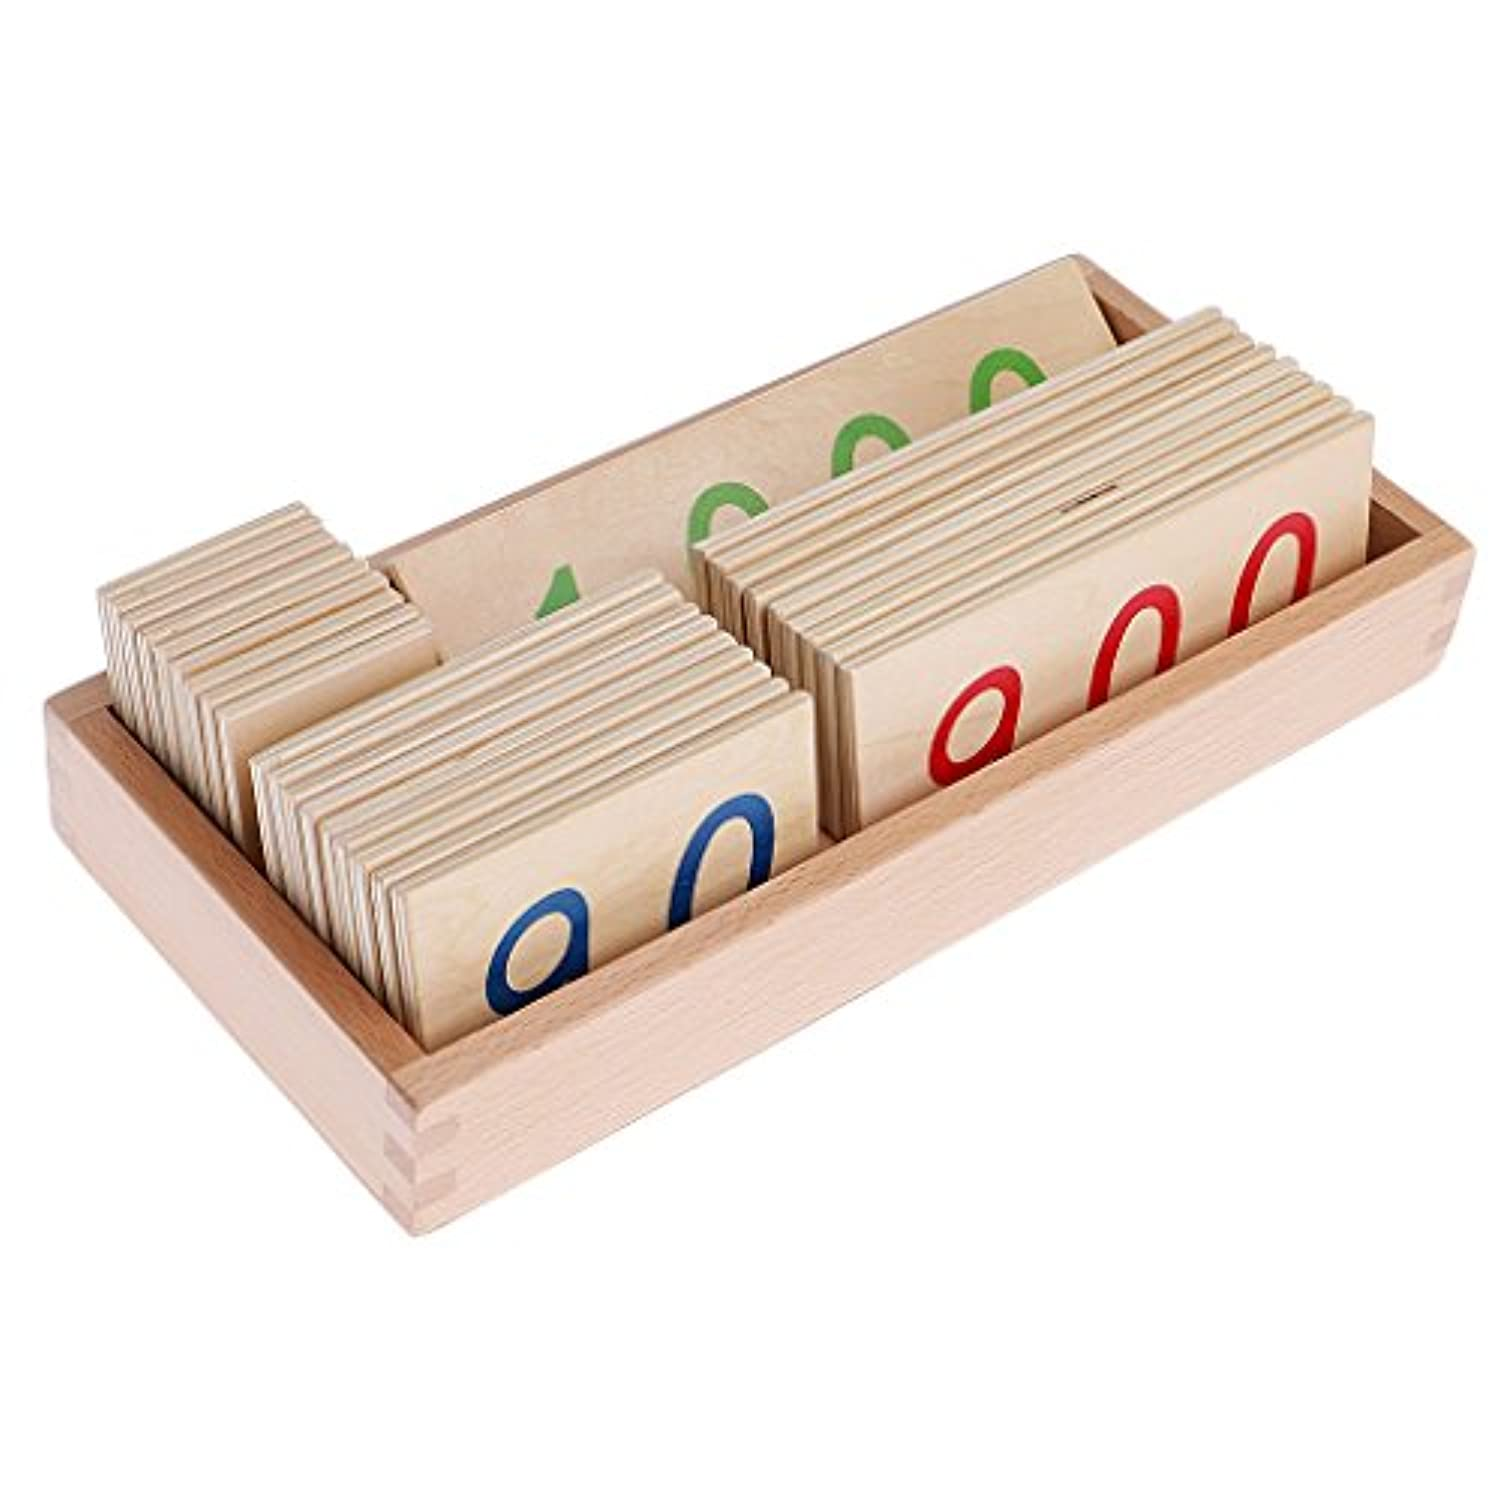 MagiDeal Durable Montessori Mathematics Wooden Counting Number Cards (1-3000) Small for Math Learning Enlightment